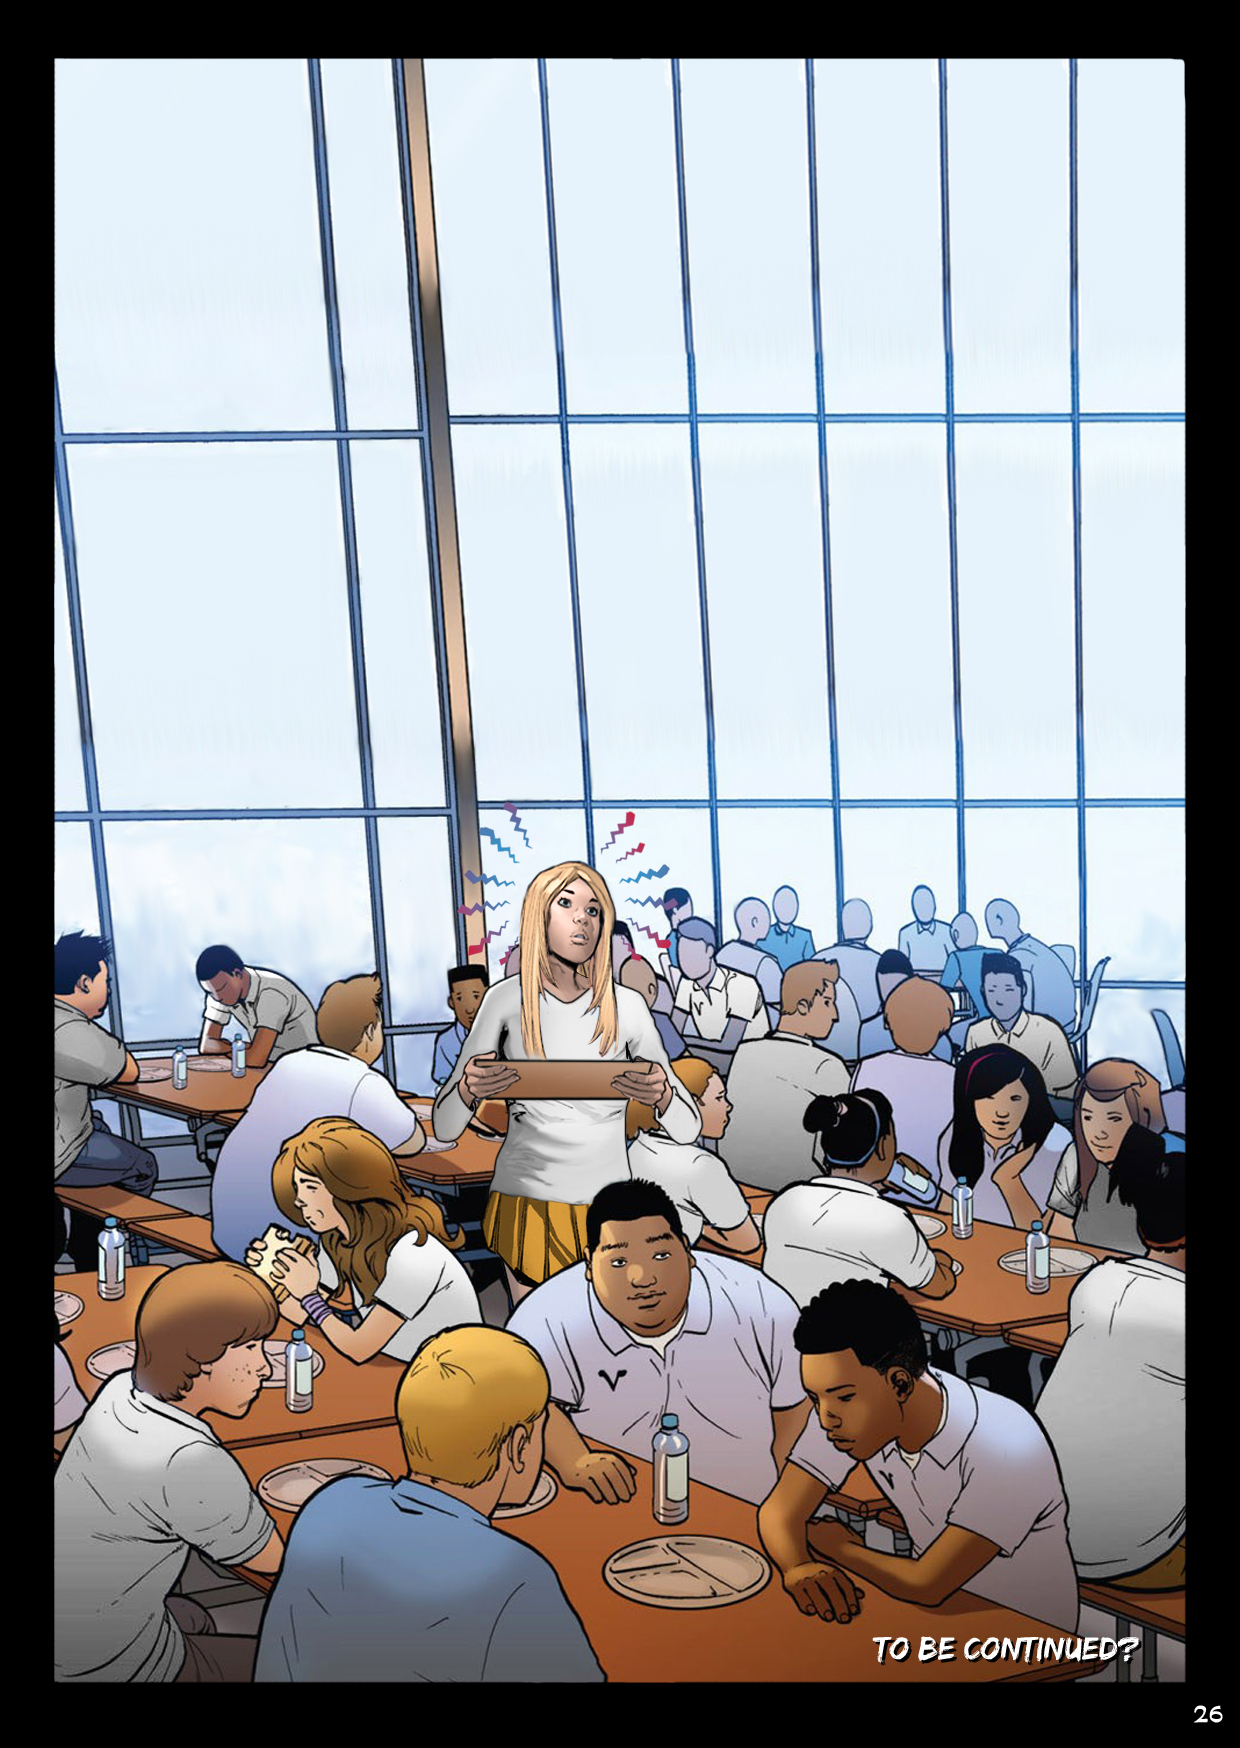 In the cafeteria. something is powerful enough to distract Pamela from school lunch.